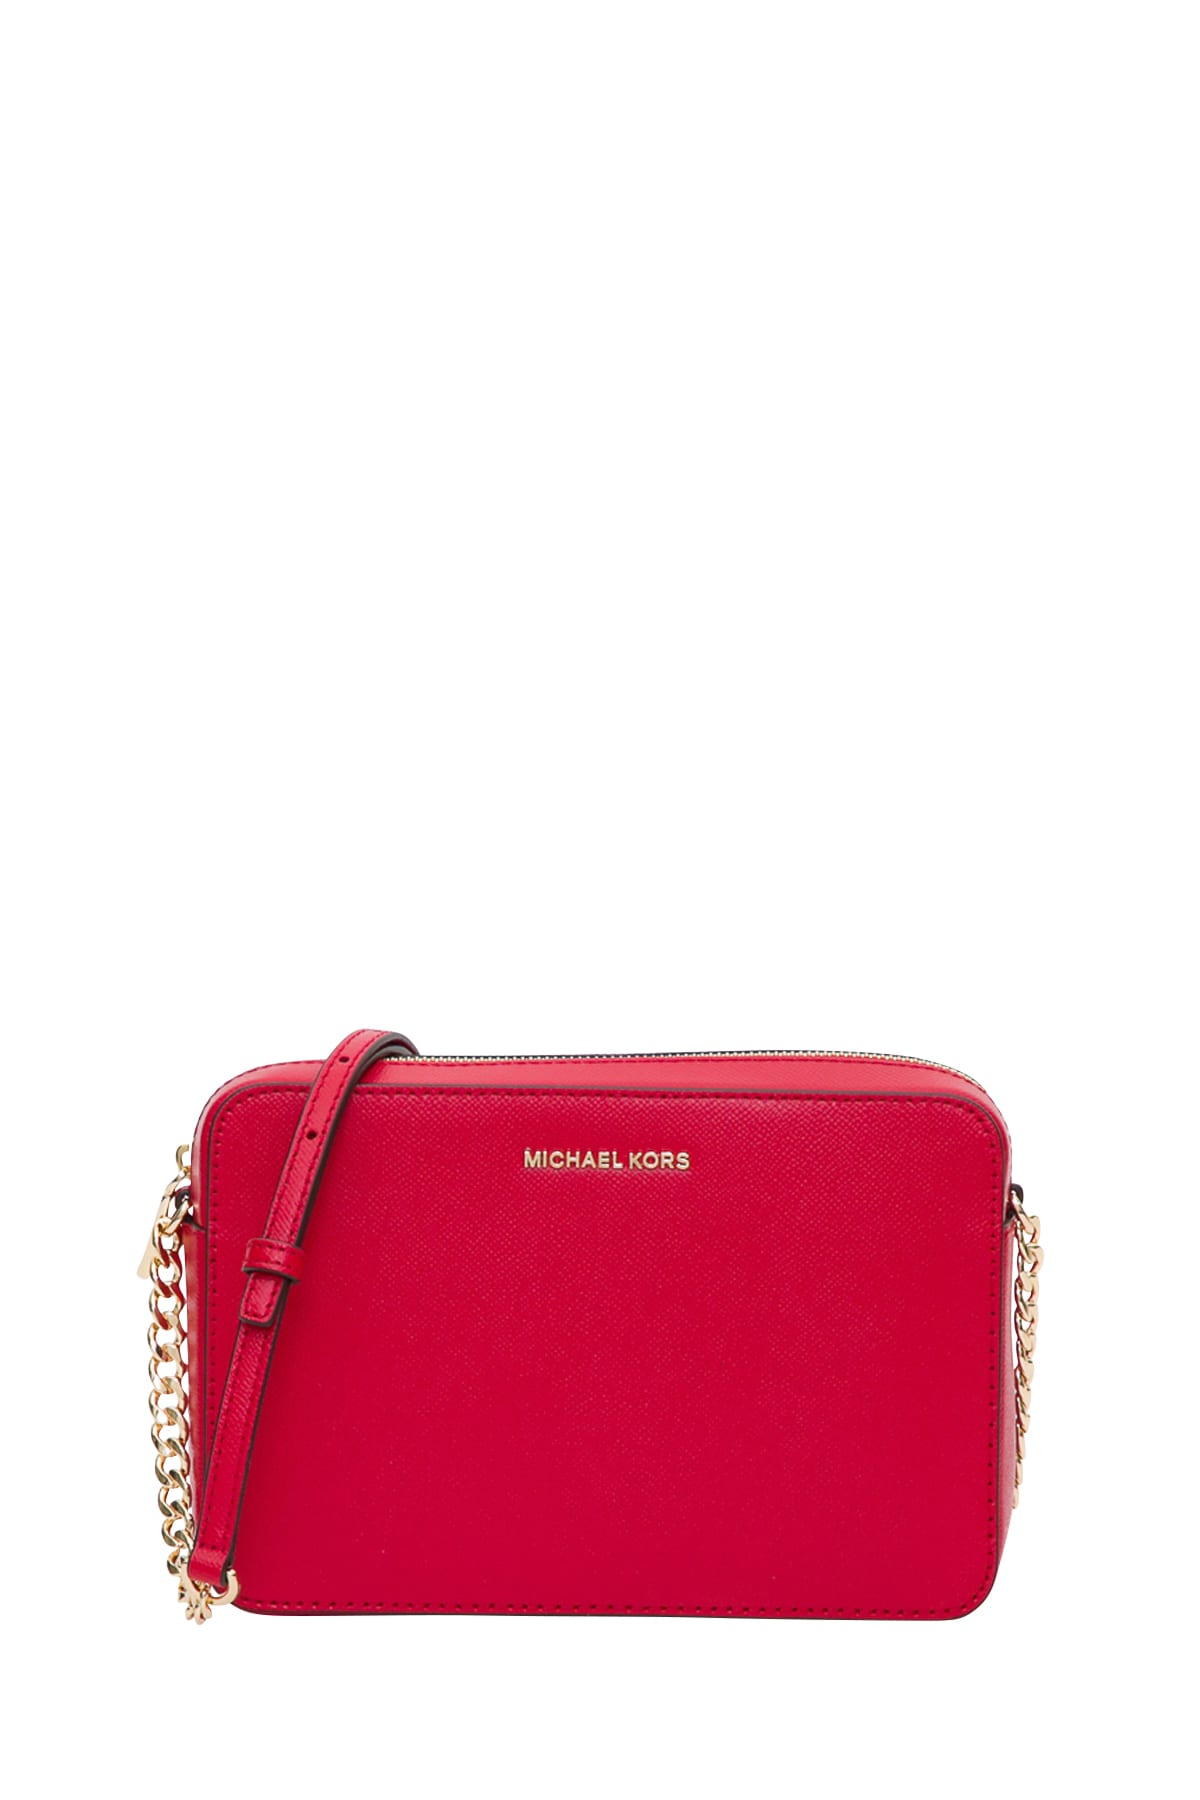 Leather crossbody bag Michael Michael Kors Red in Leather